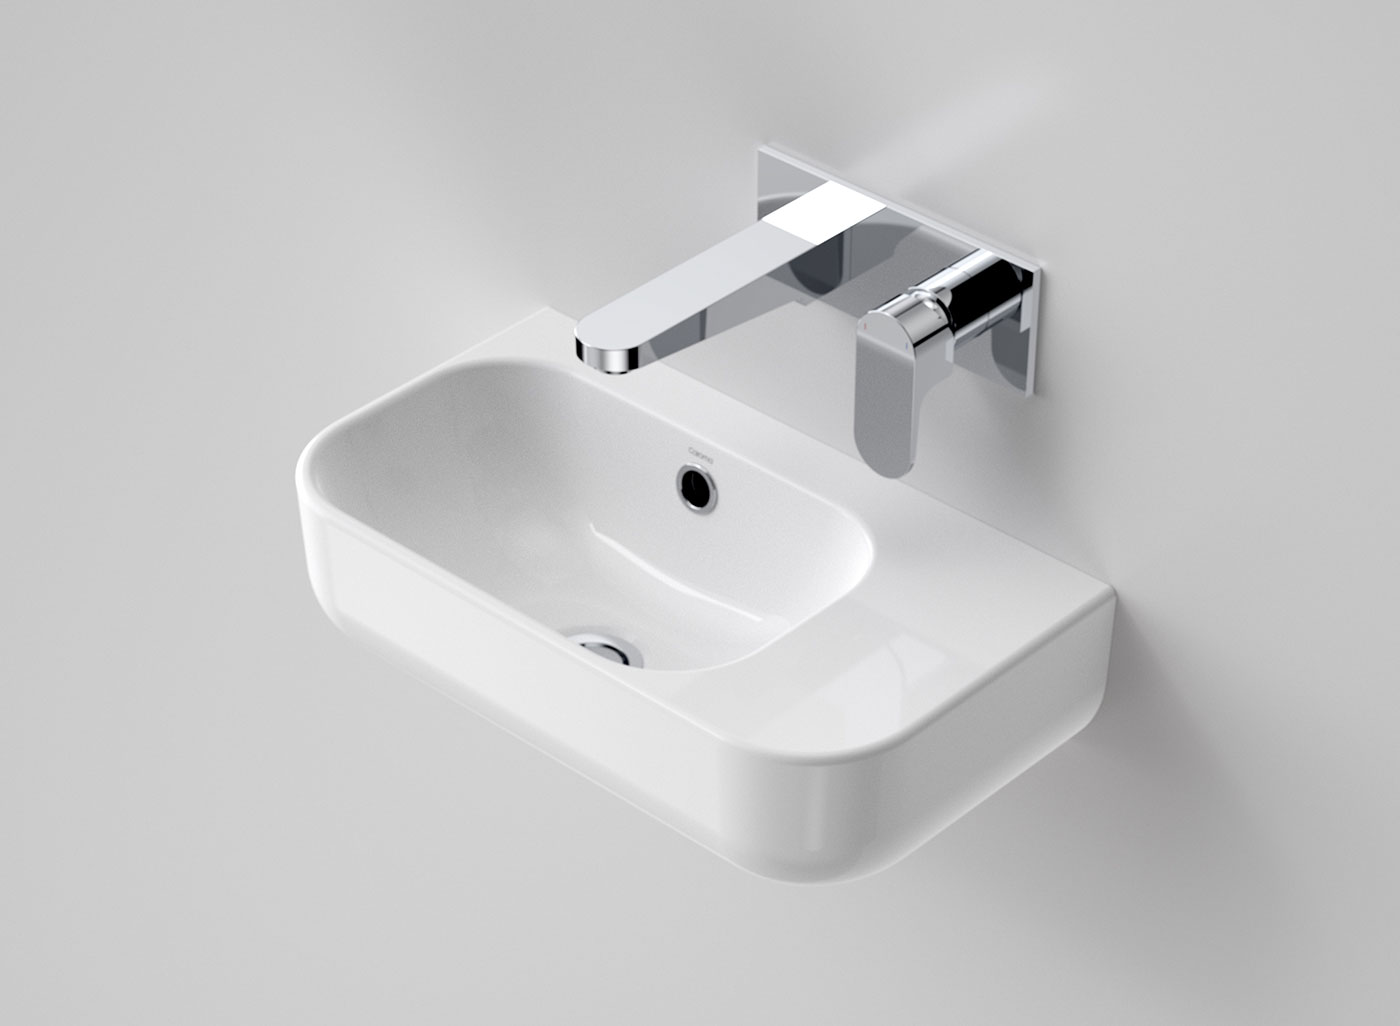 subdued curves of Luna will effortlessly flow into any contemporary bathroom. Team up with the rest of the Luna collection for a stylish